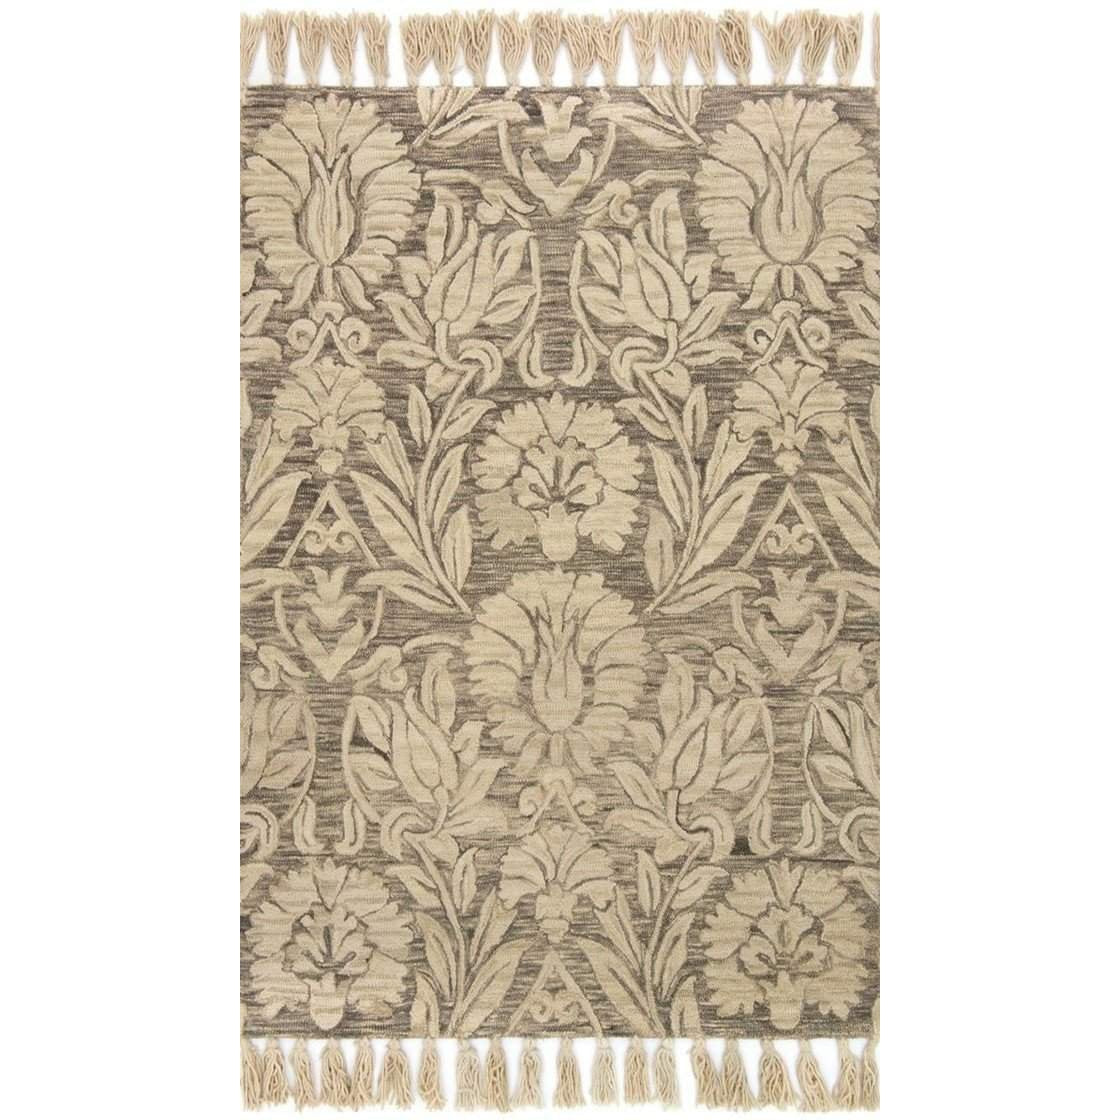 Joanna Gaines Jozie Day Rug Collection - JG-01 SILVER